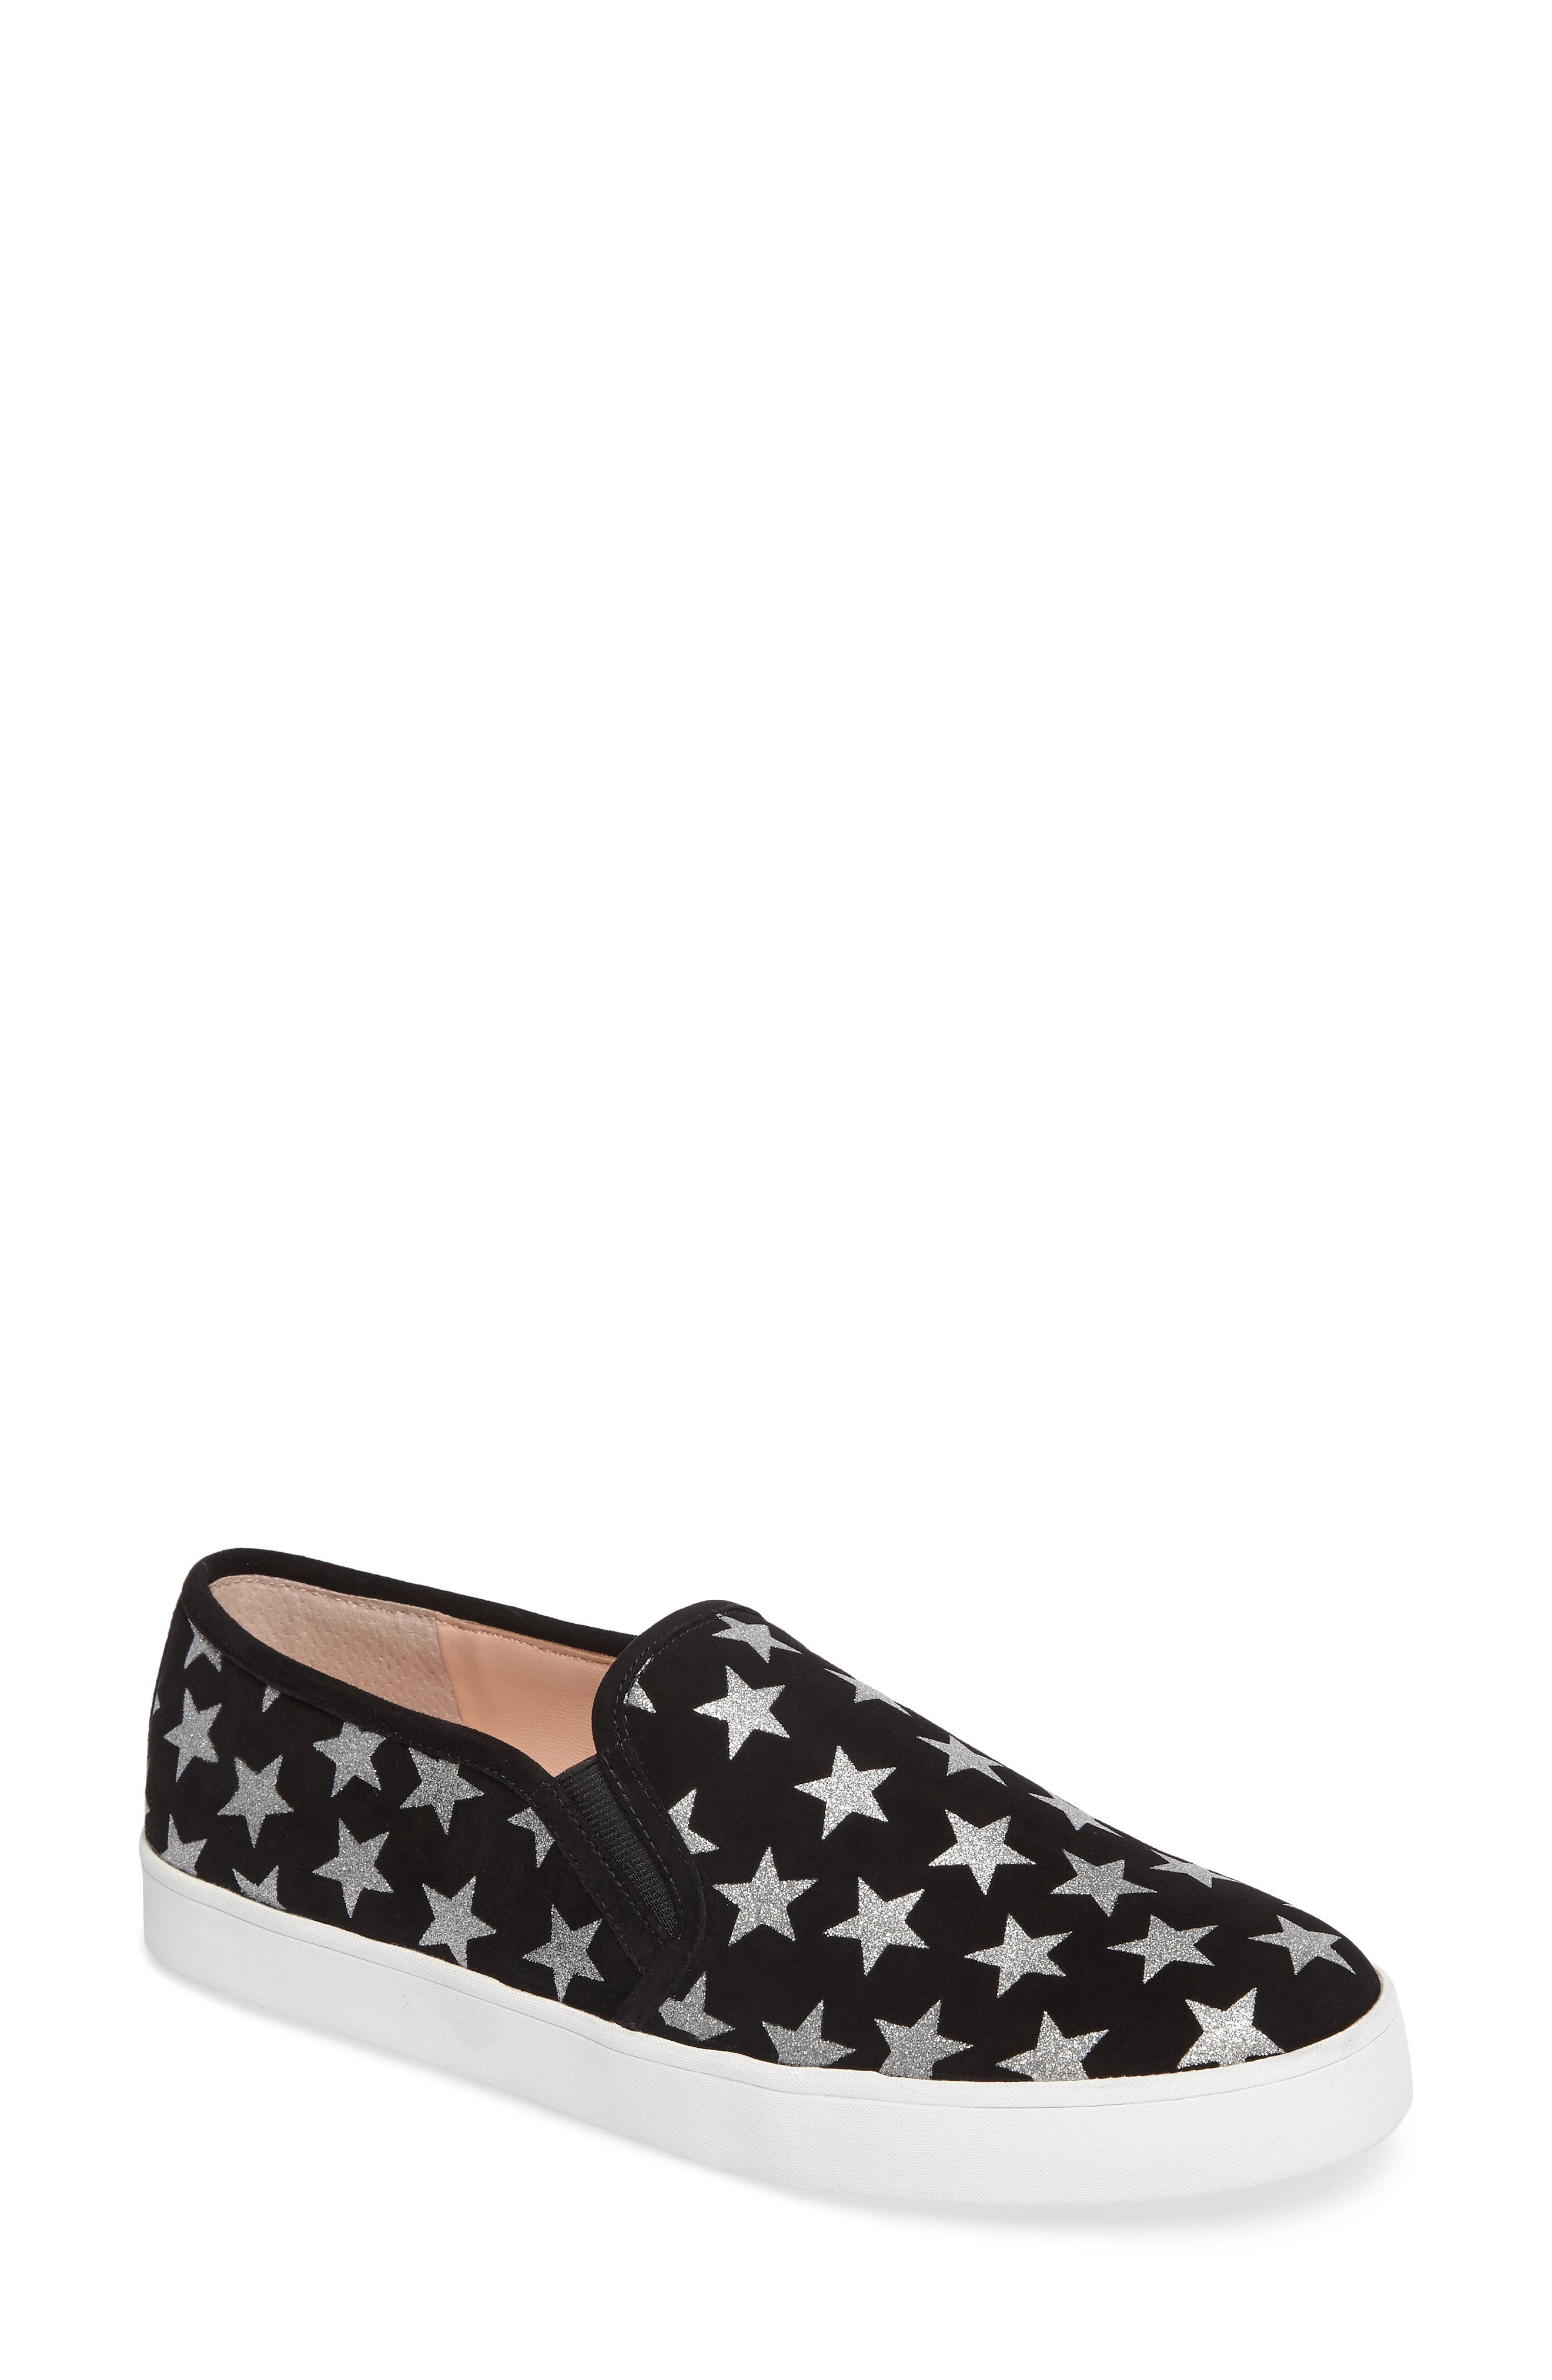 liberty slip-on sneaker,                         Main,                         color, Black/ Silver